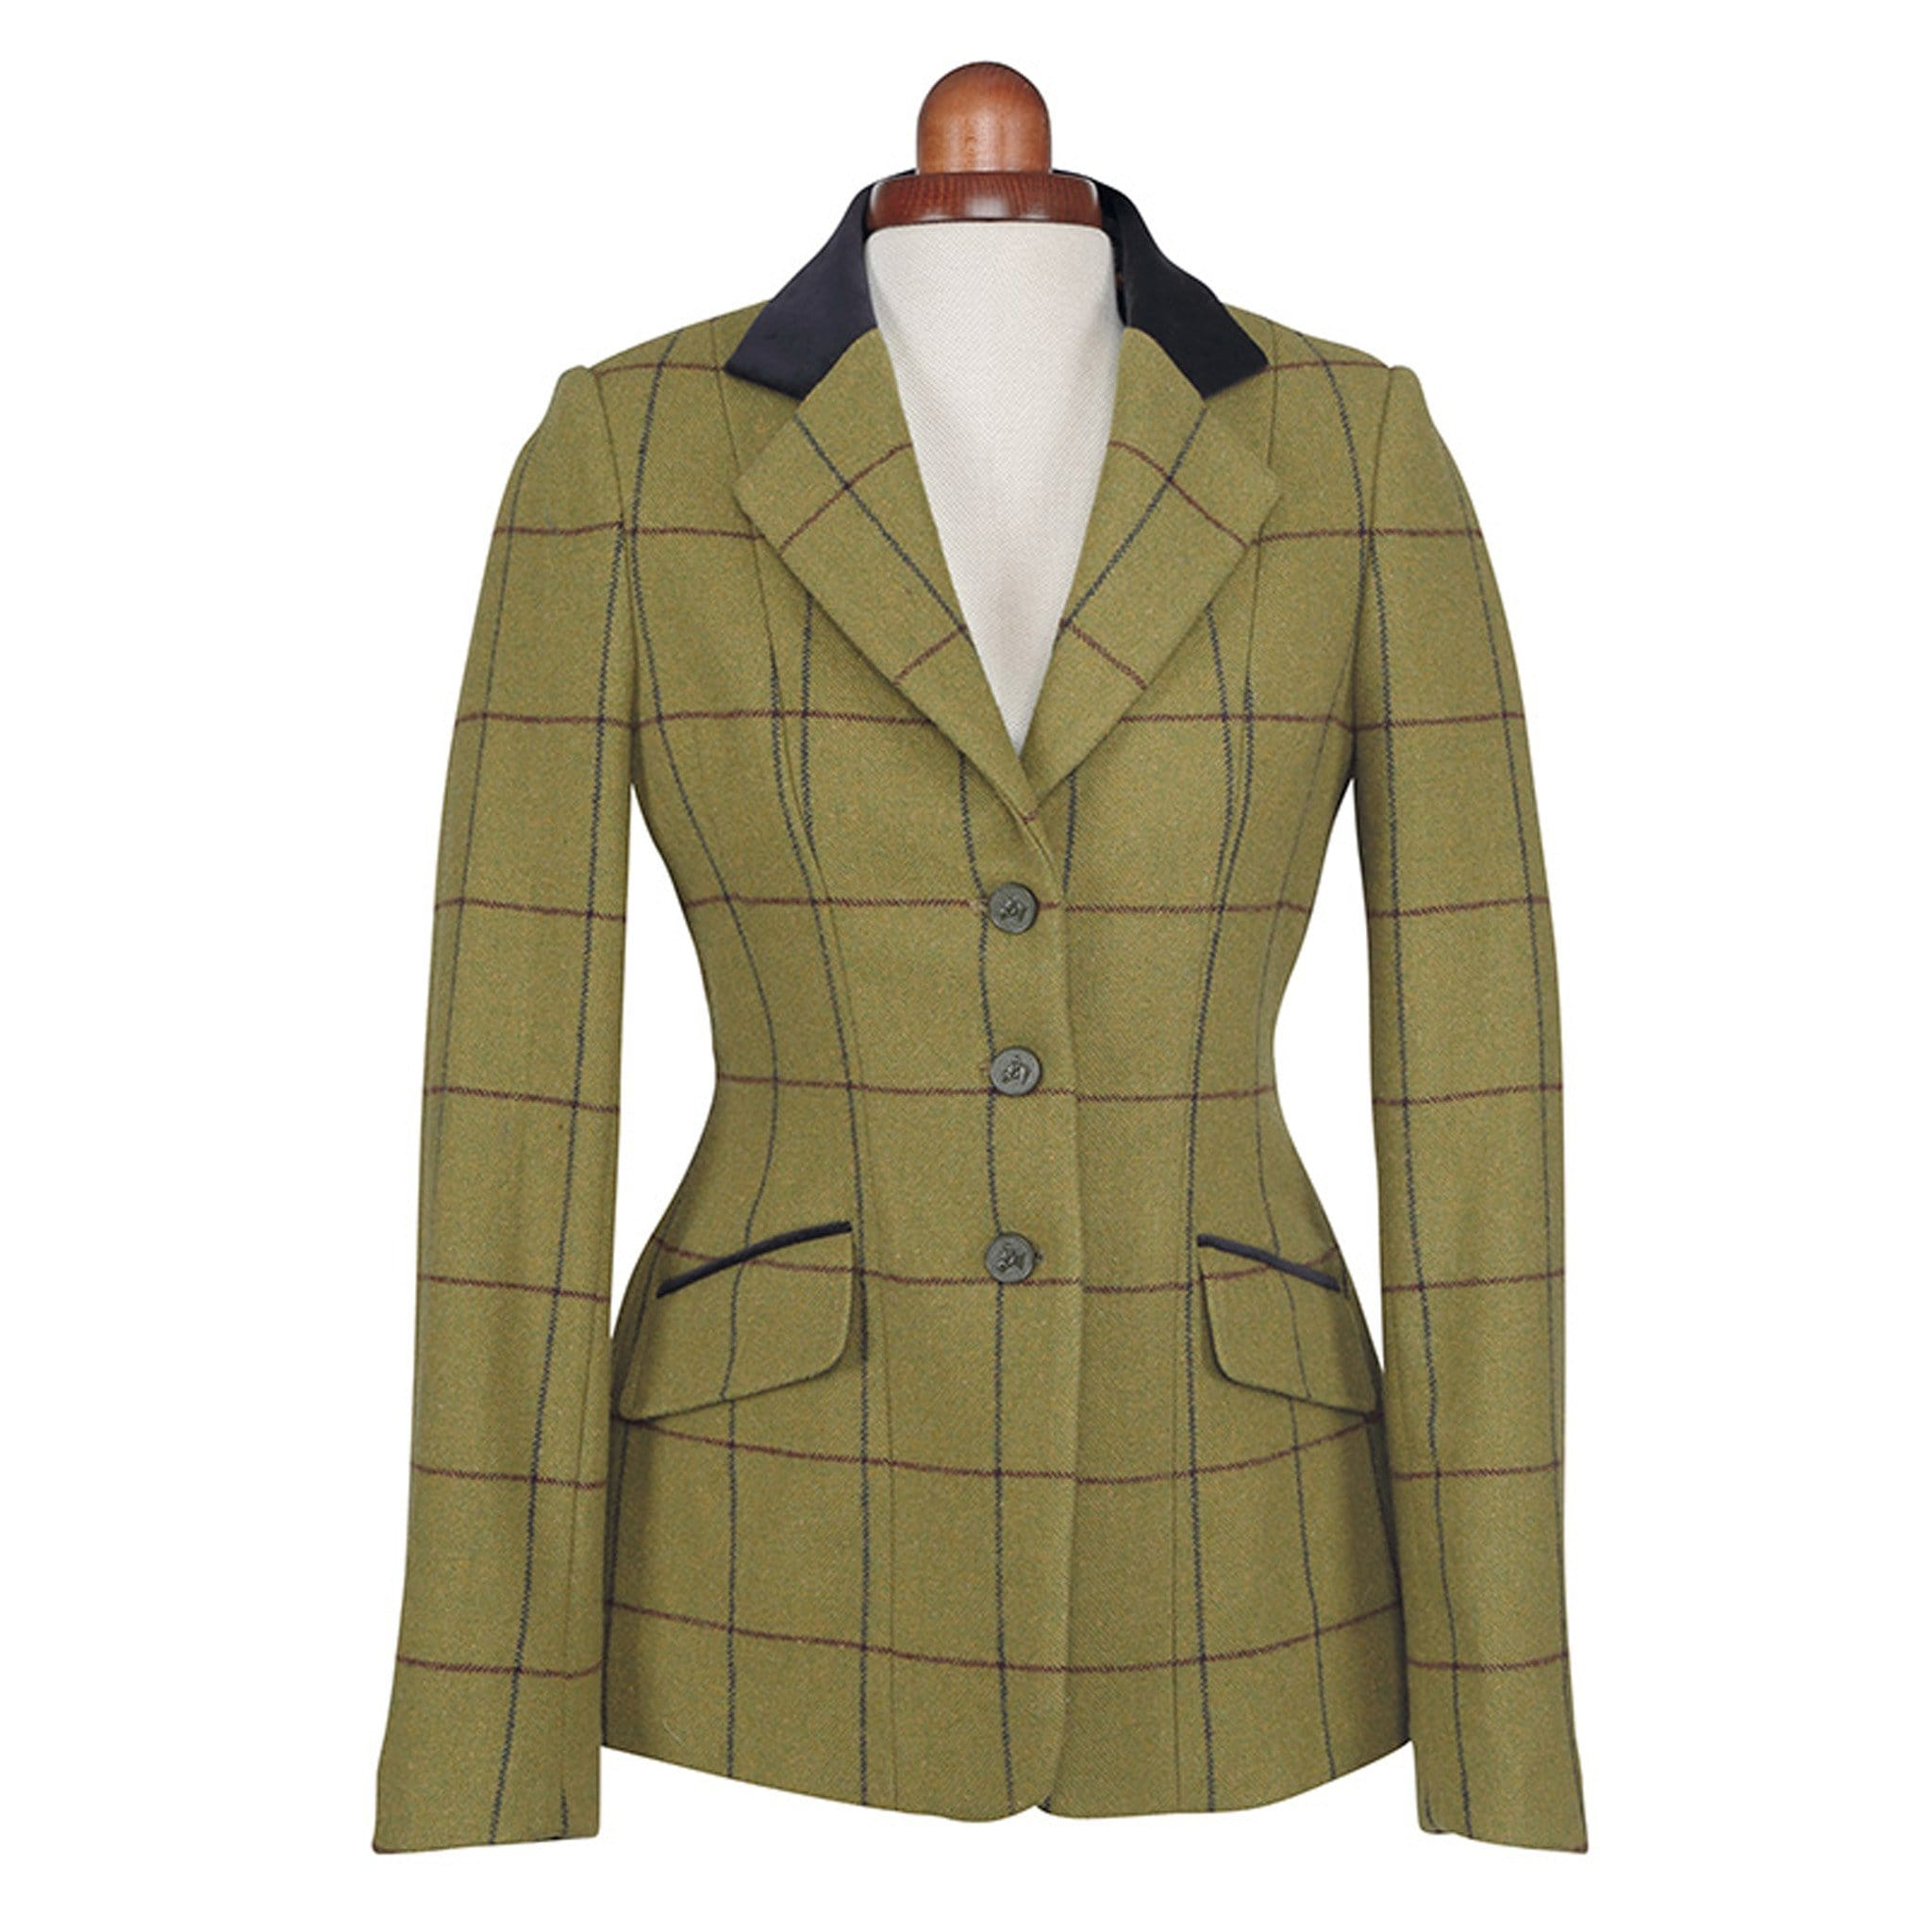 Shires Aubrion Saratoga Jacket Navy and Maroon Check Studio 9785